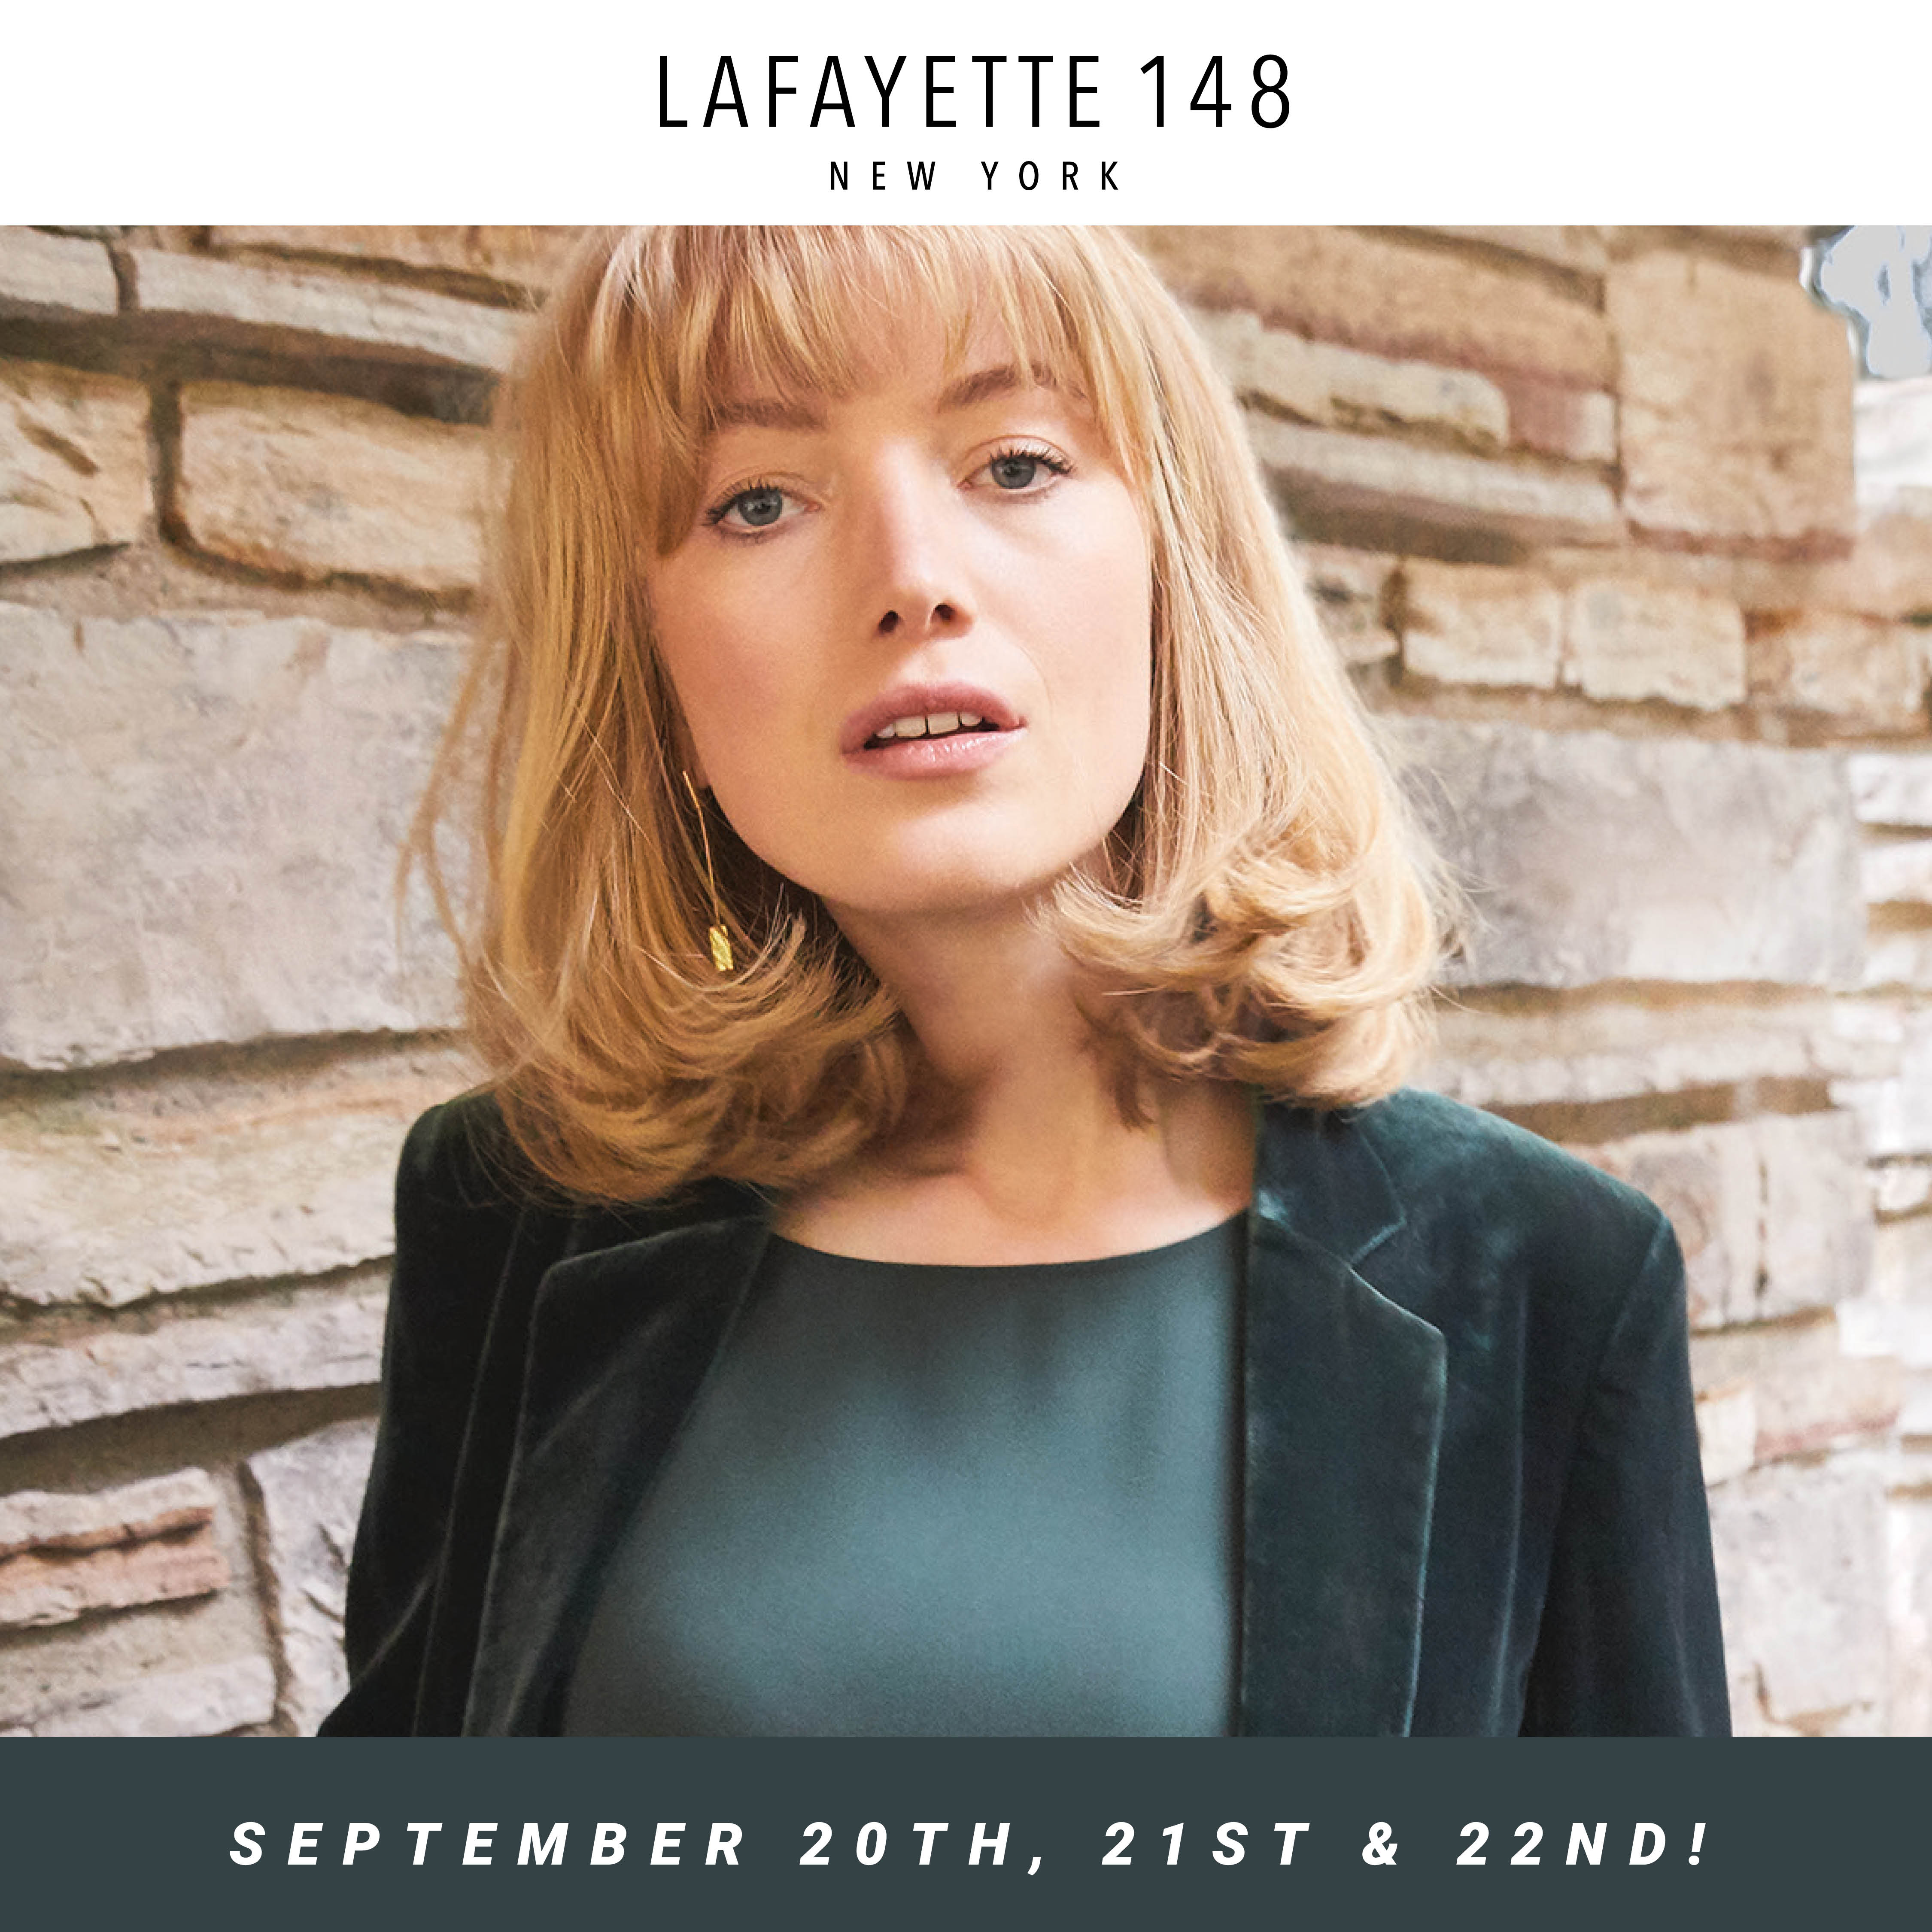 Lafayette 148 Fall Trunk Show September 20th, 21st and 22nd